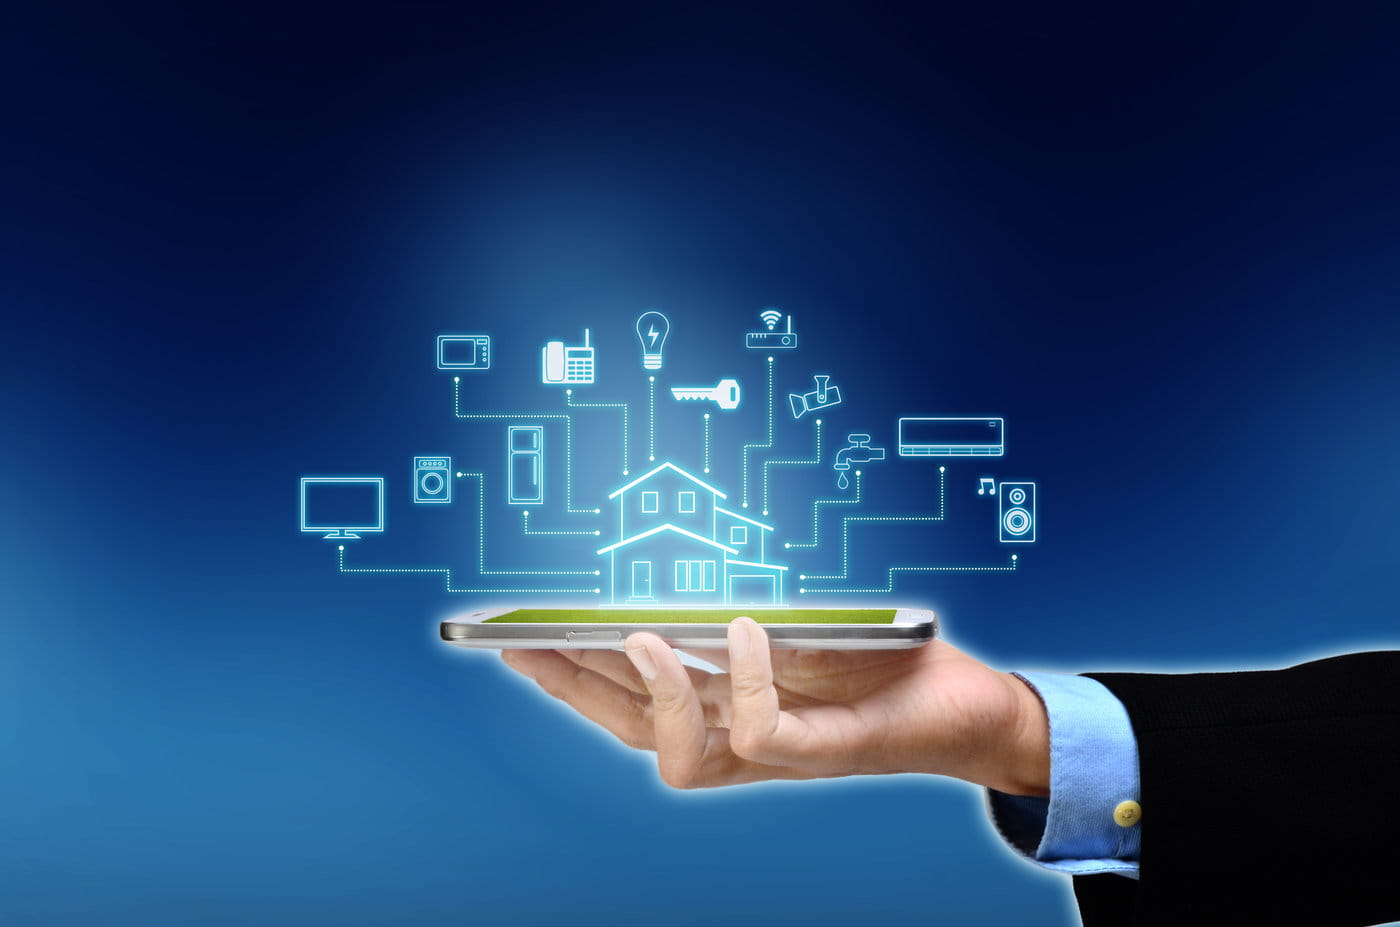 You, me and the Internet of Things